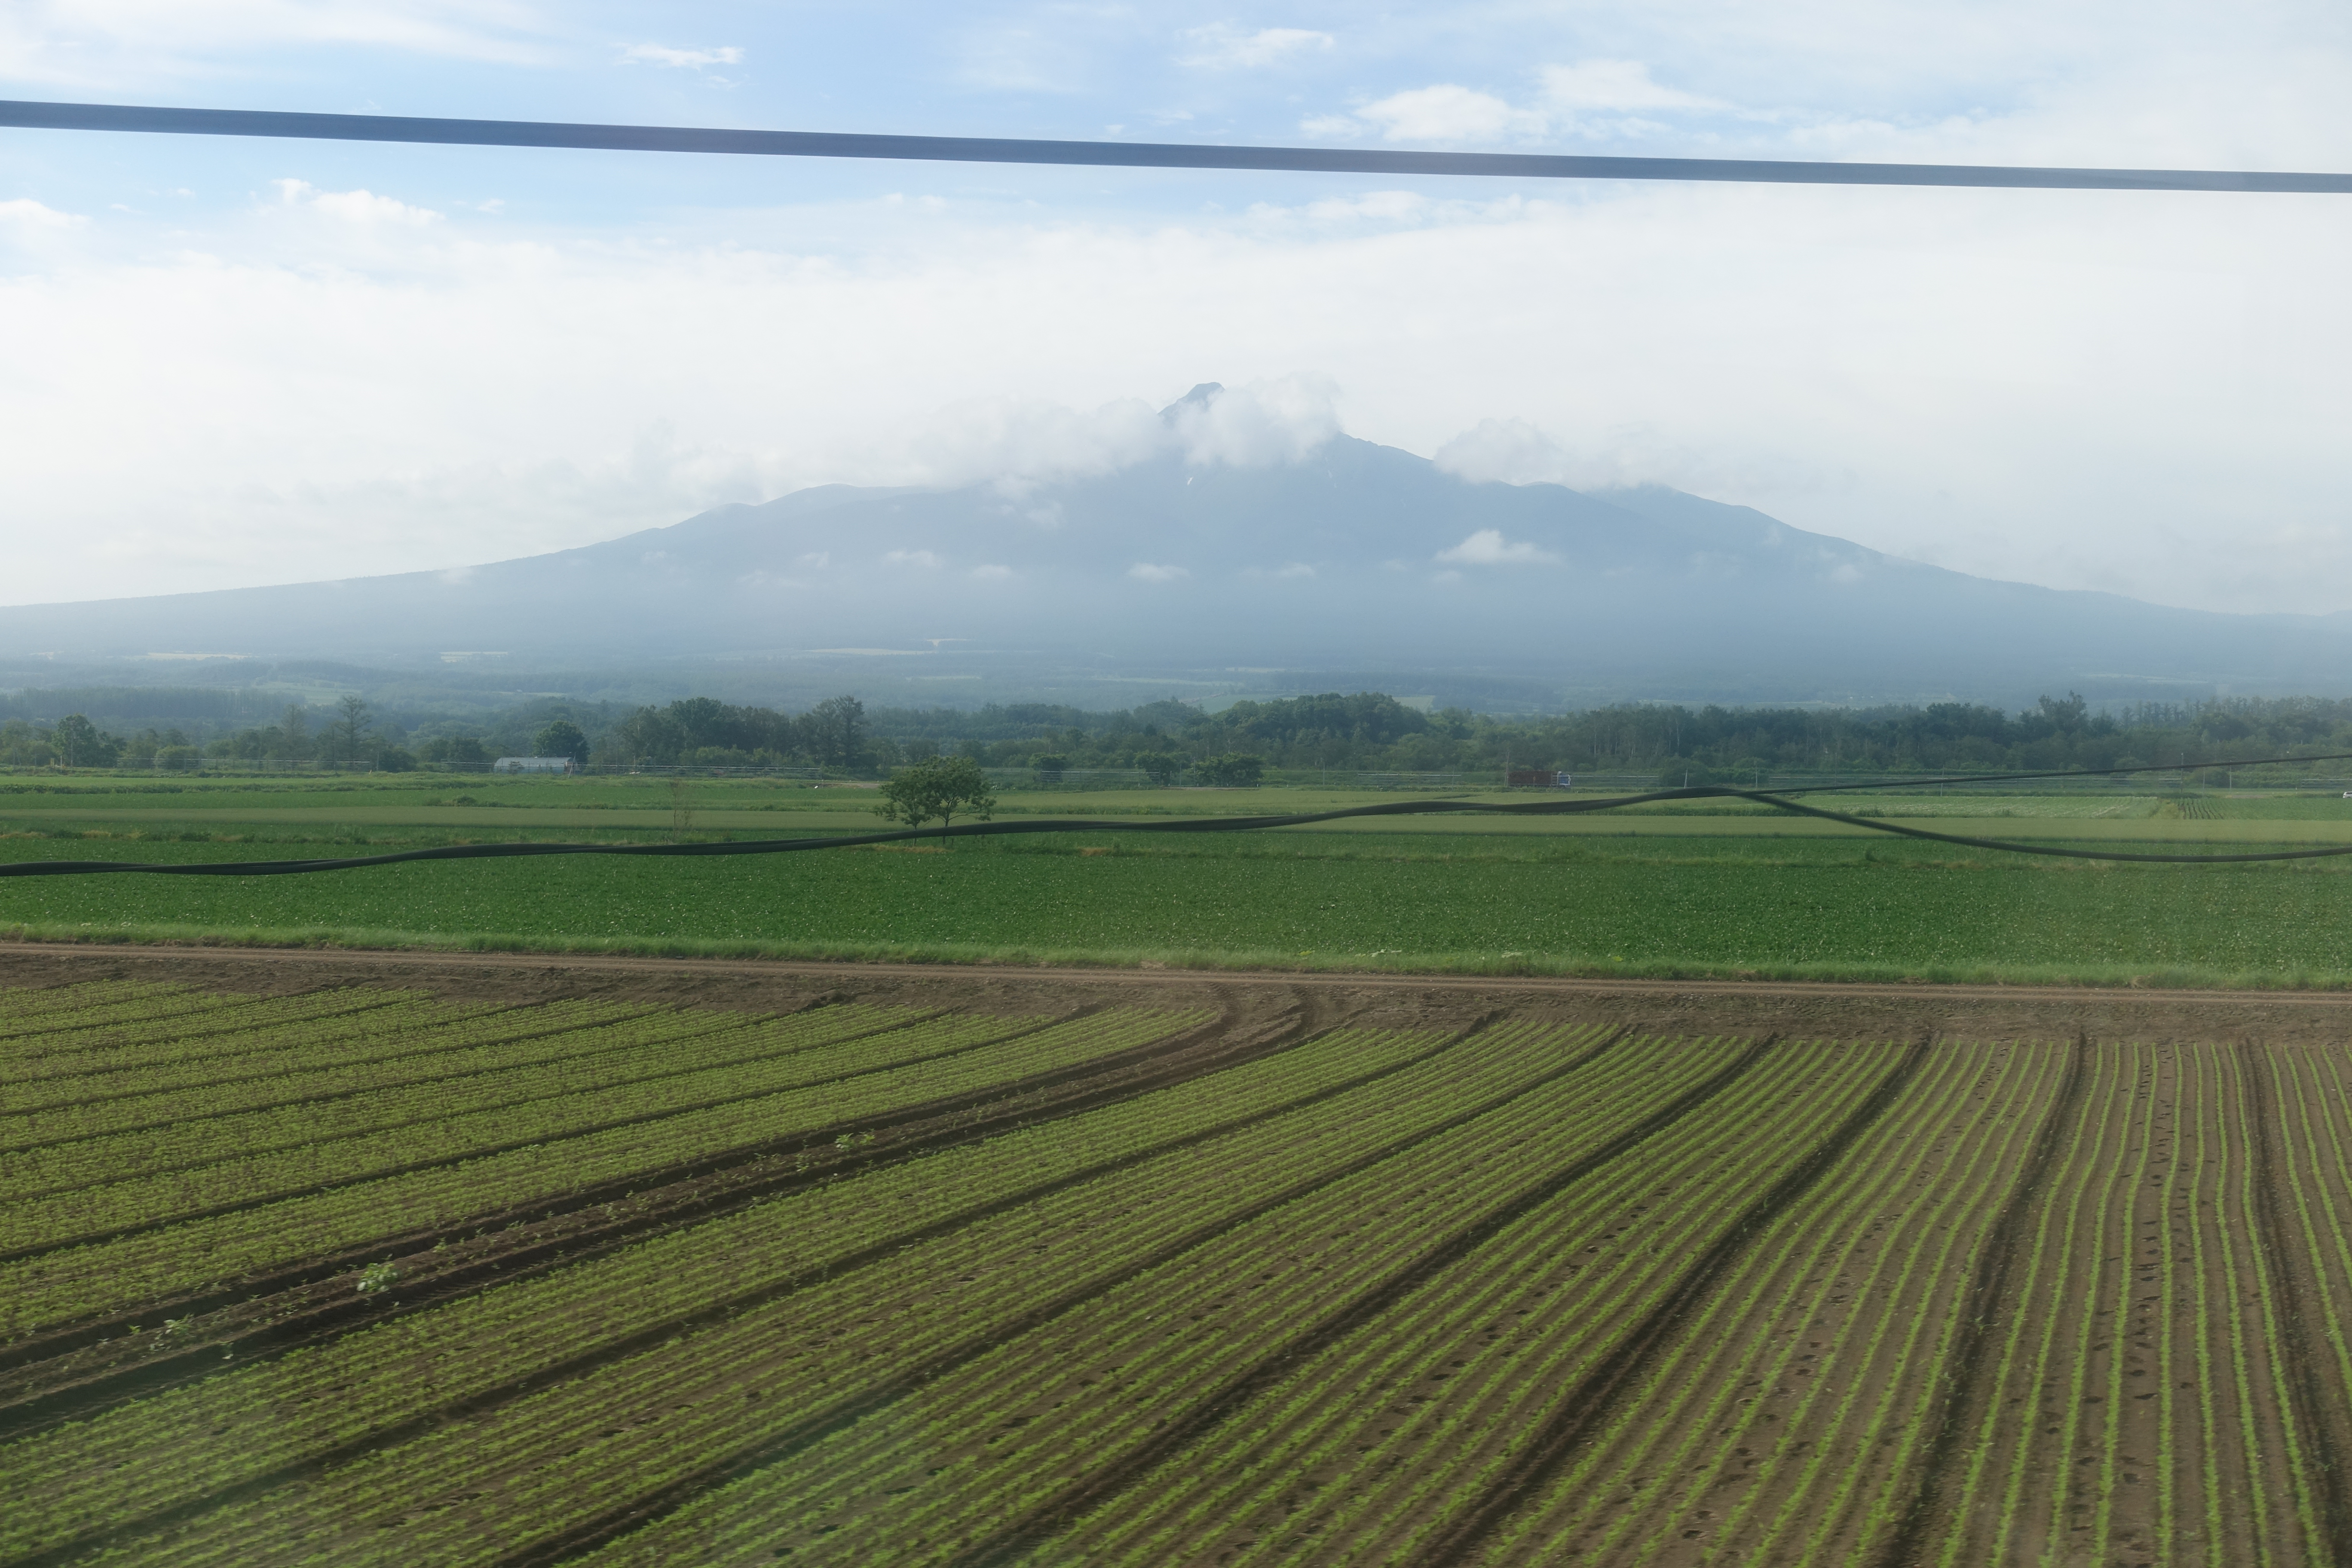 Mountain behind farmland